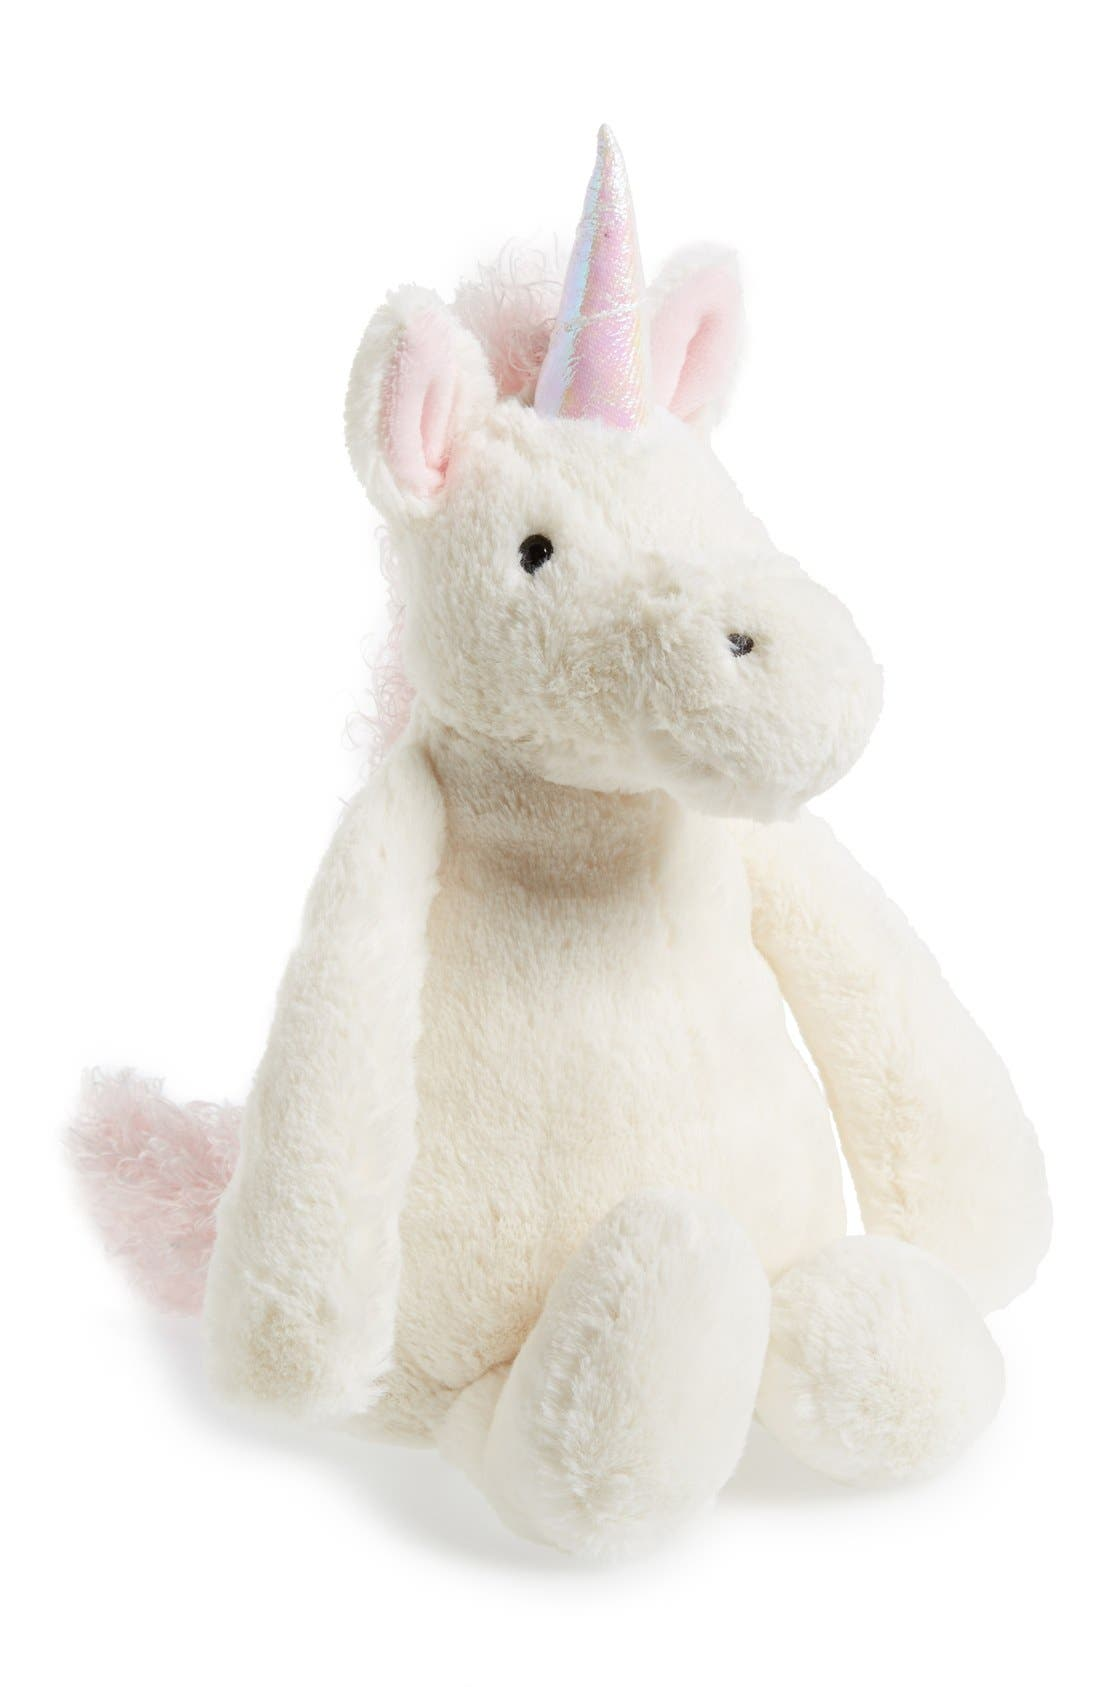 Alternate Image 1 Selected - Jellycat 'Bashful Unicorn' Stuffed Animal